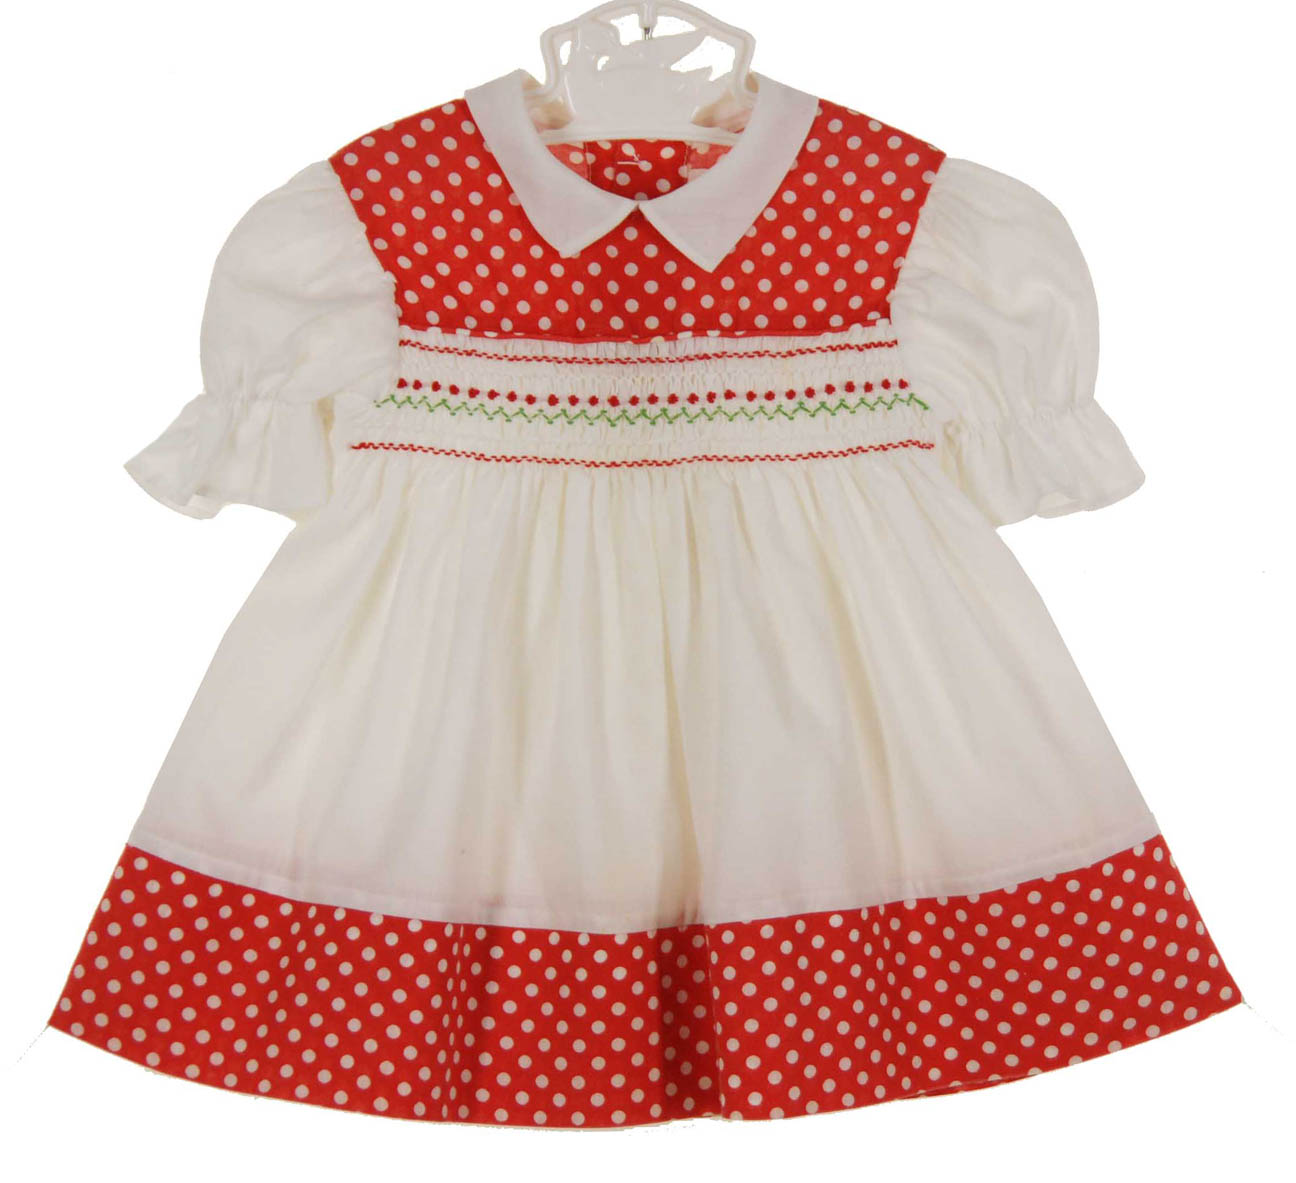 Vintage 1960s Polly Flinders Red And White Smocked Baby